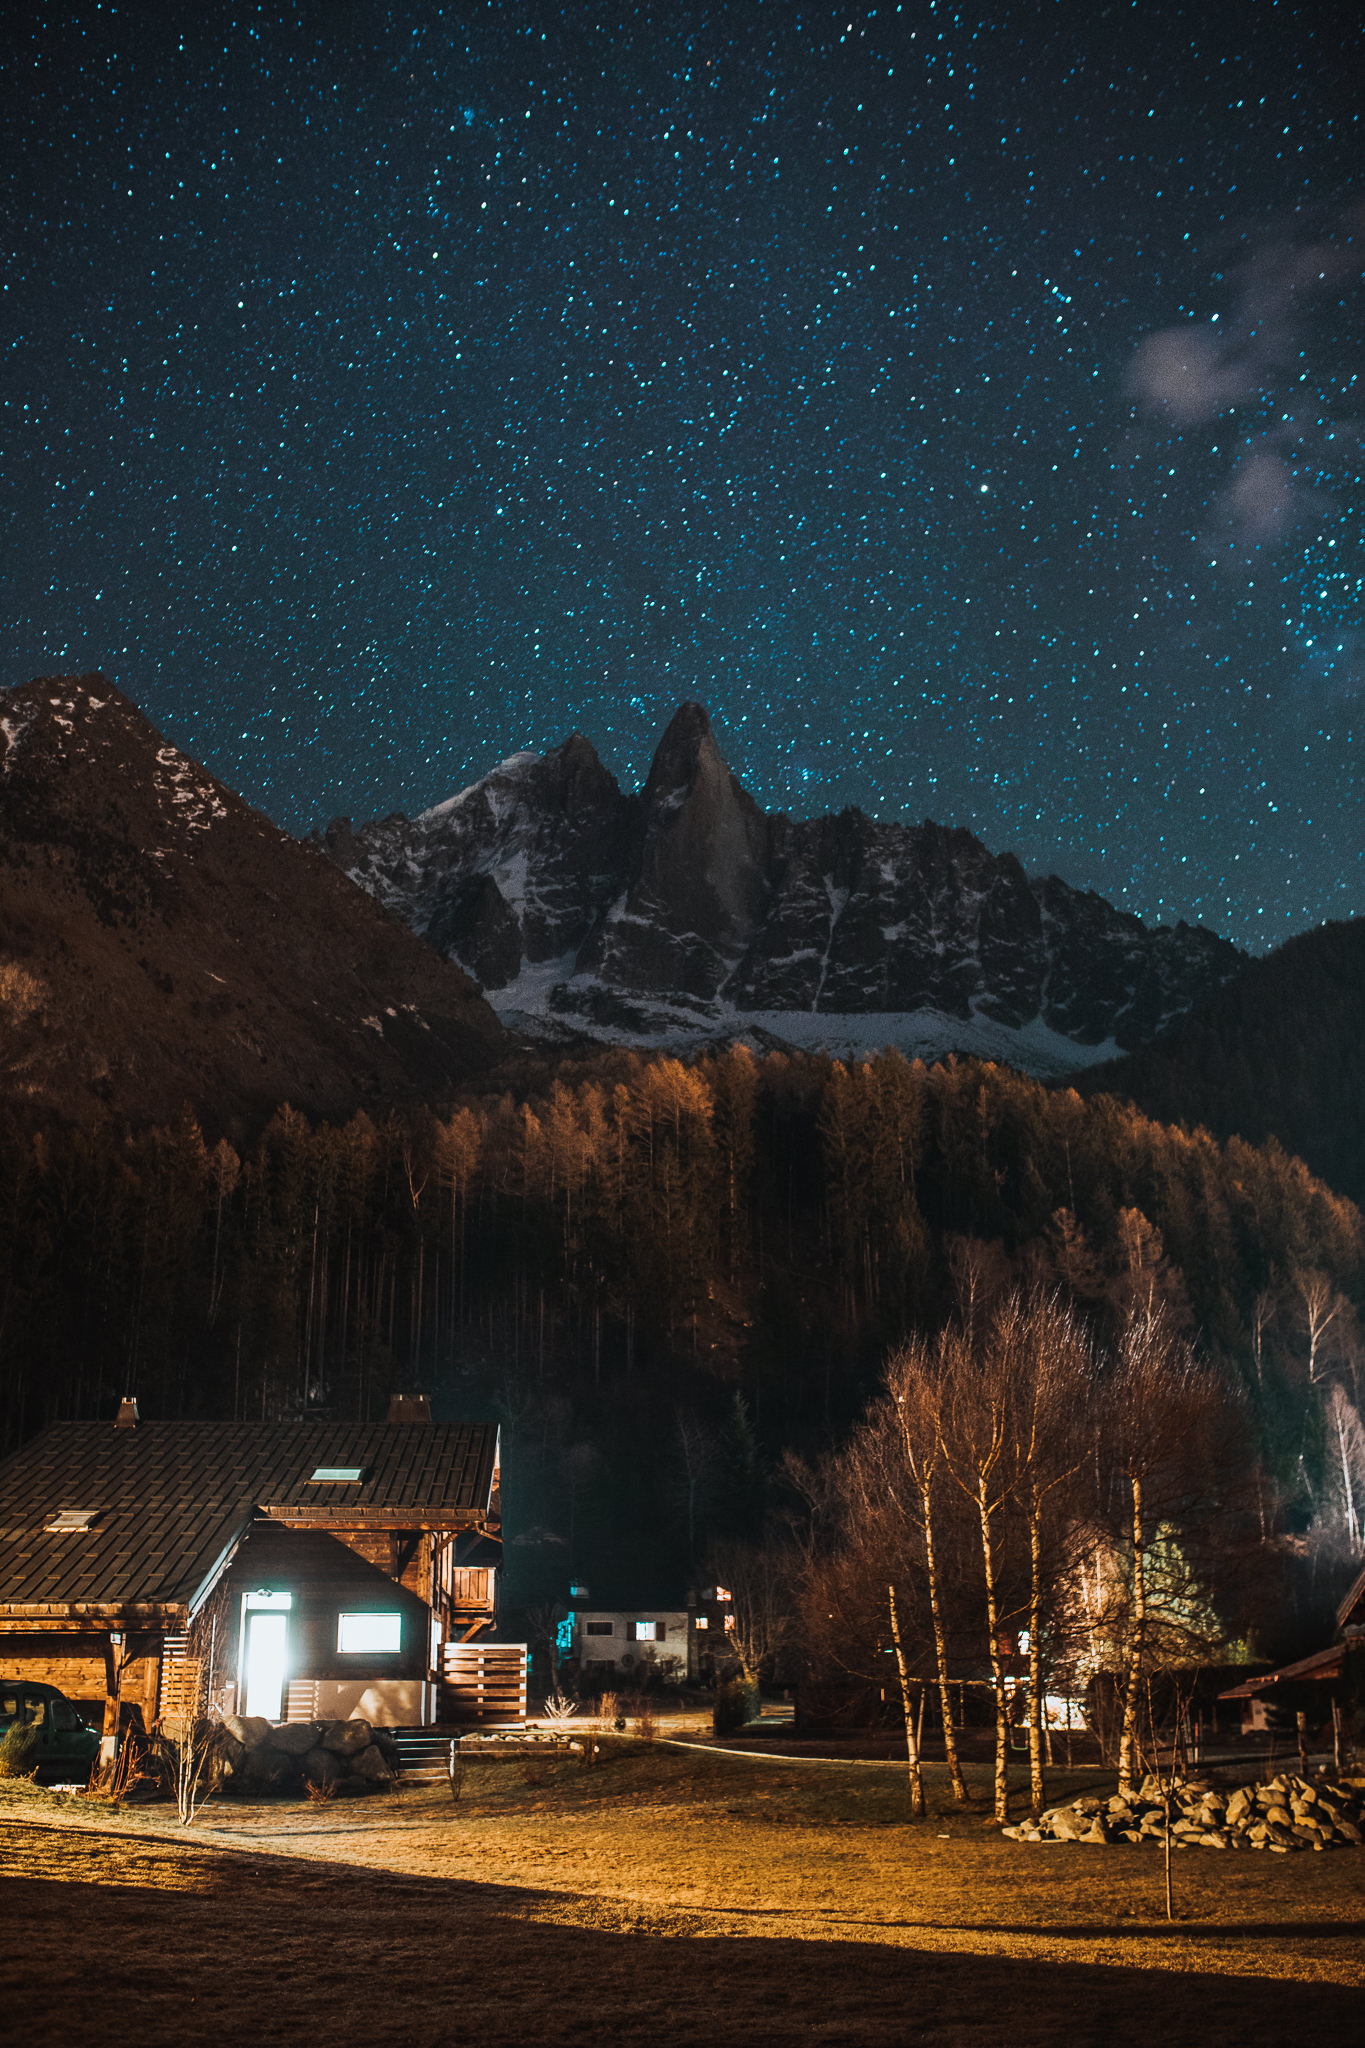 wooden house in foreground at night with mountain and stars in the background